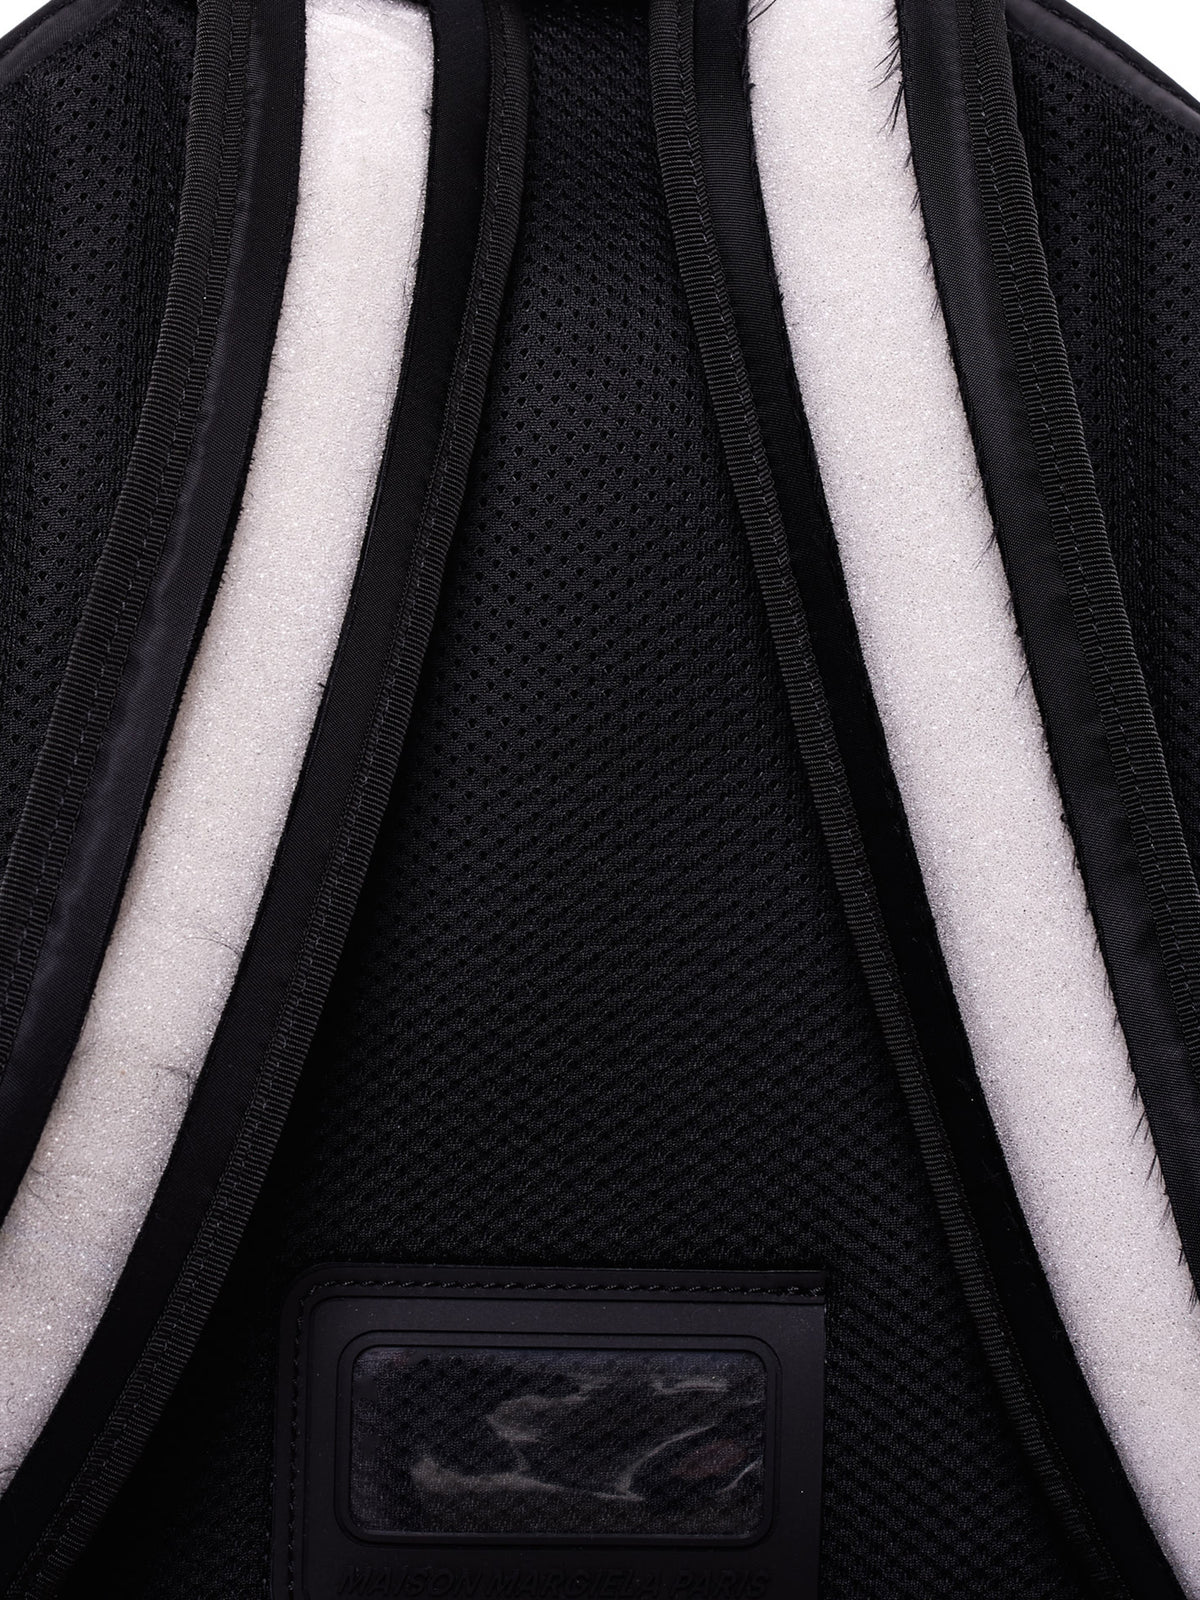 Maison Margiela Backpack - Hlorenzo Detail 2